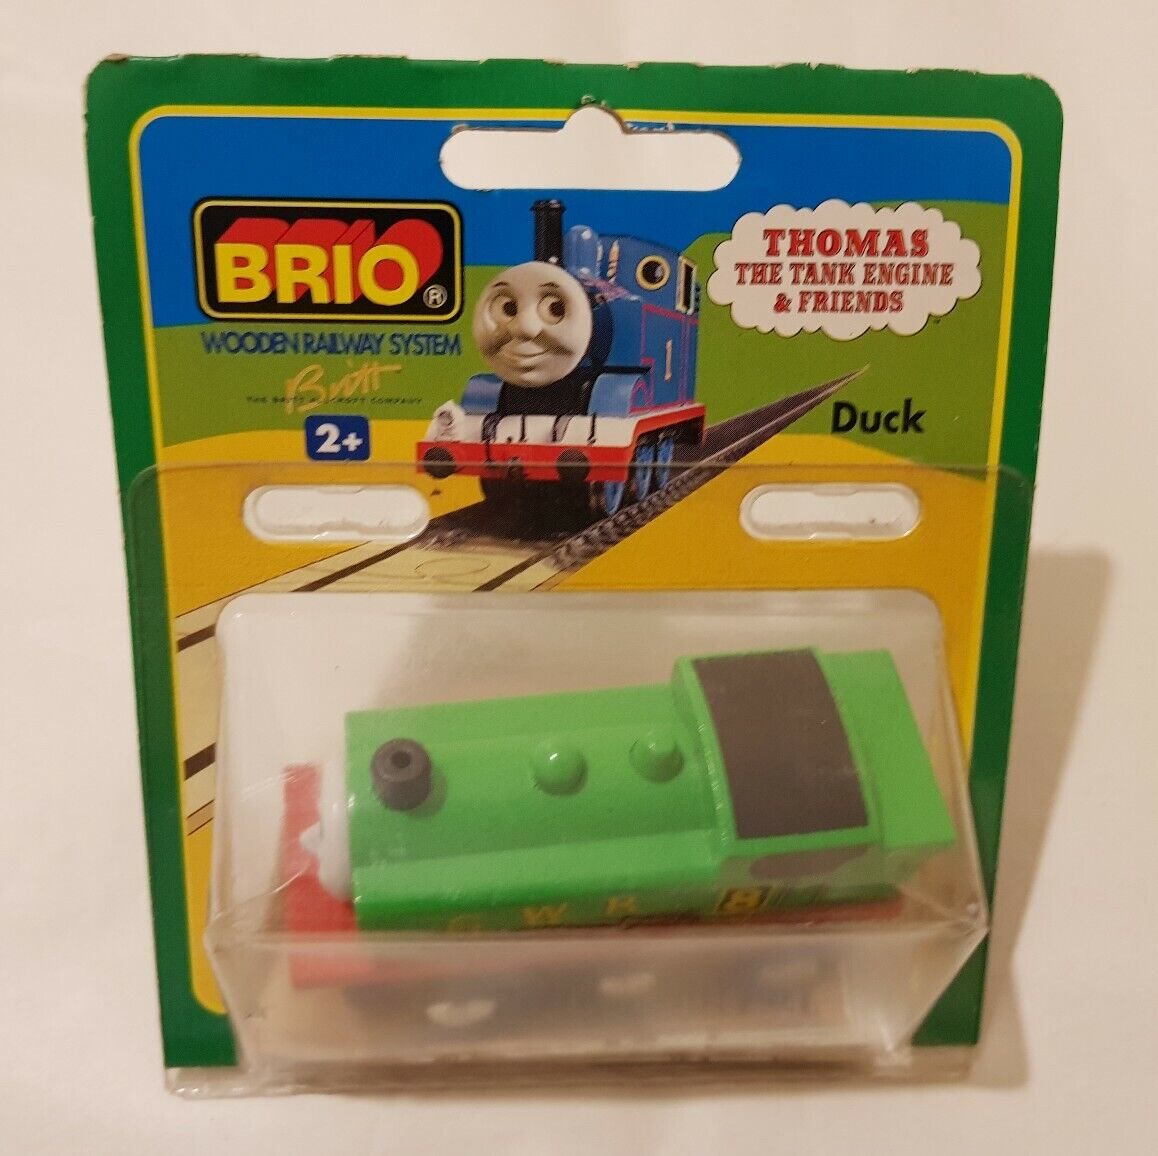 Thomas The Tank Engine & freunde BRIO DUCK Holz TRAIN HolzEN NEW IN BOX